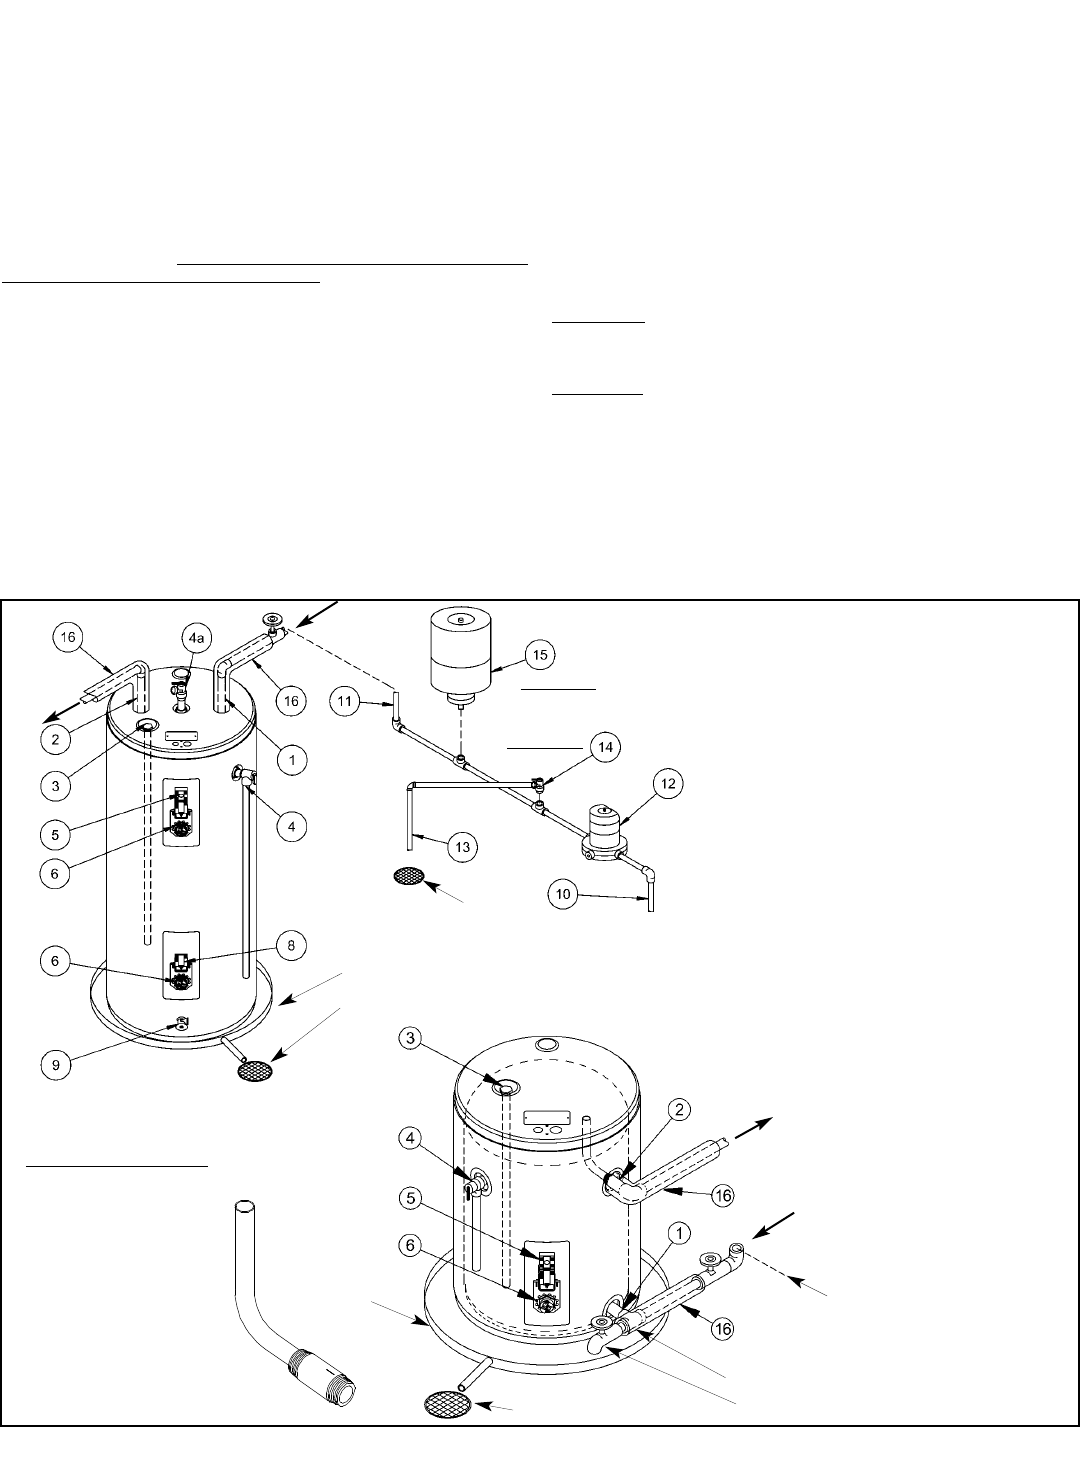 Wiring Diagram For Ge 6 Gallon Water Heater, Wiring, Get